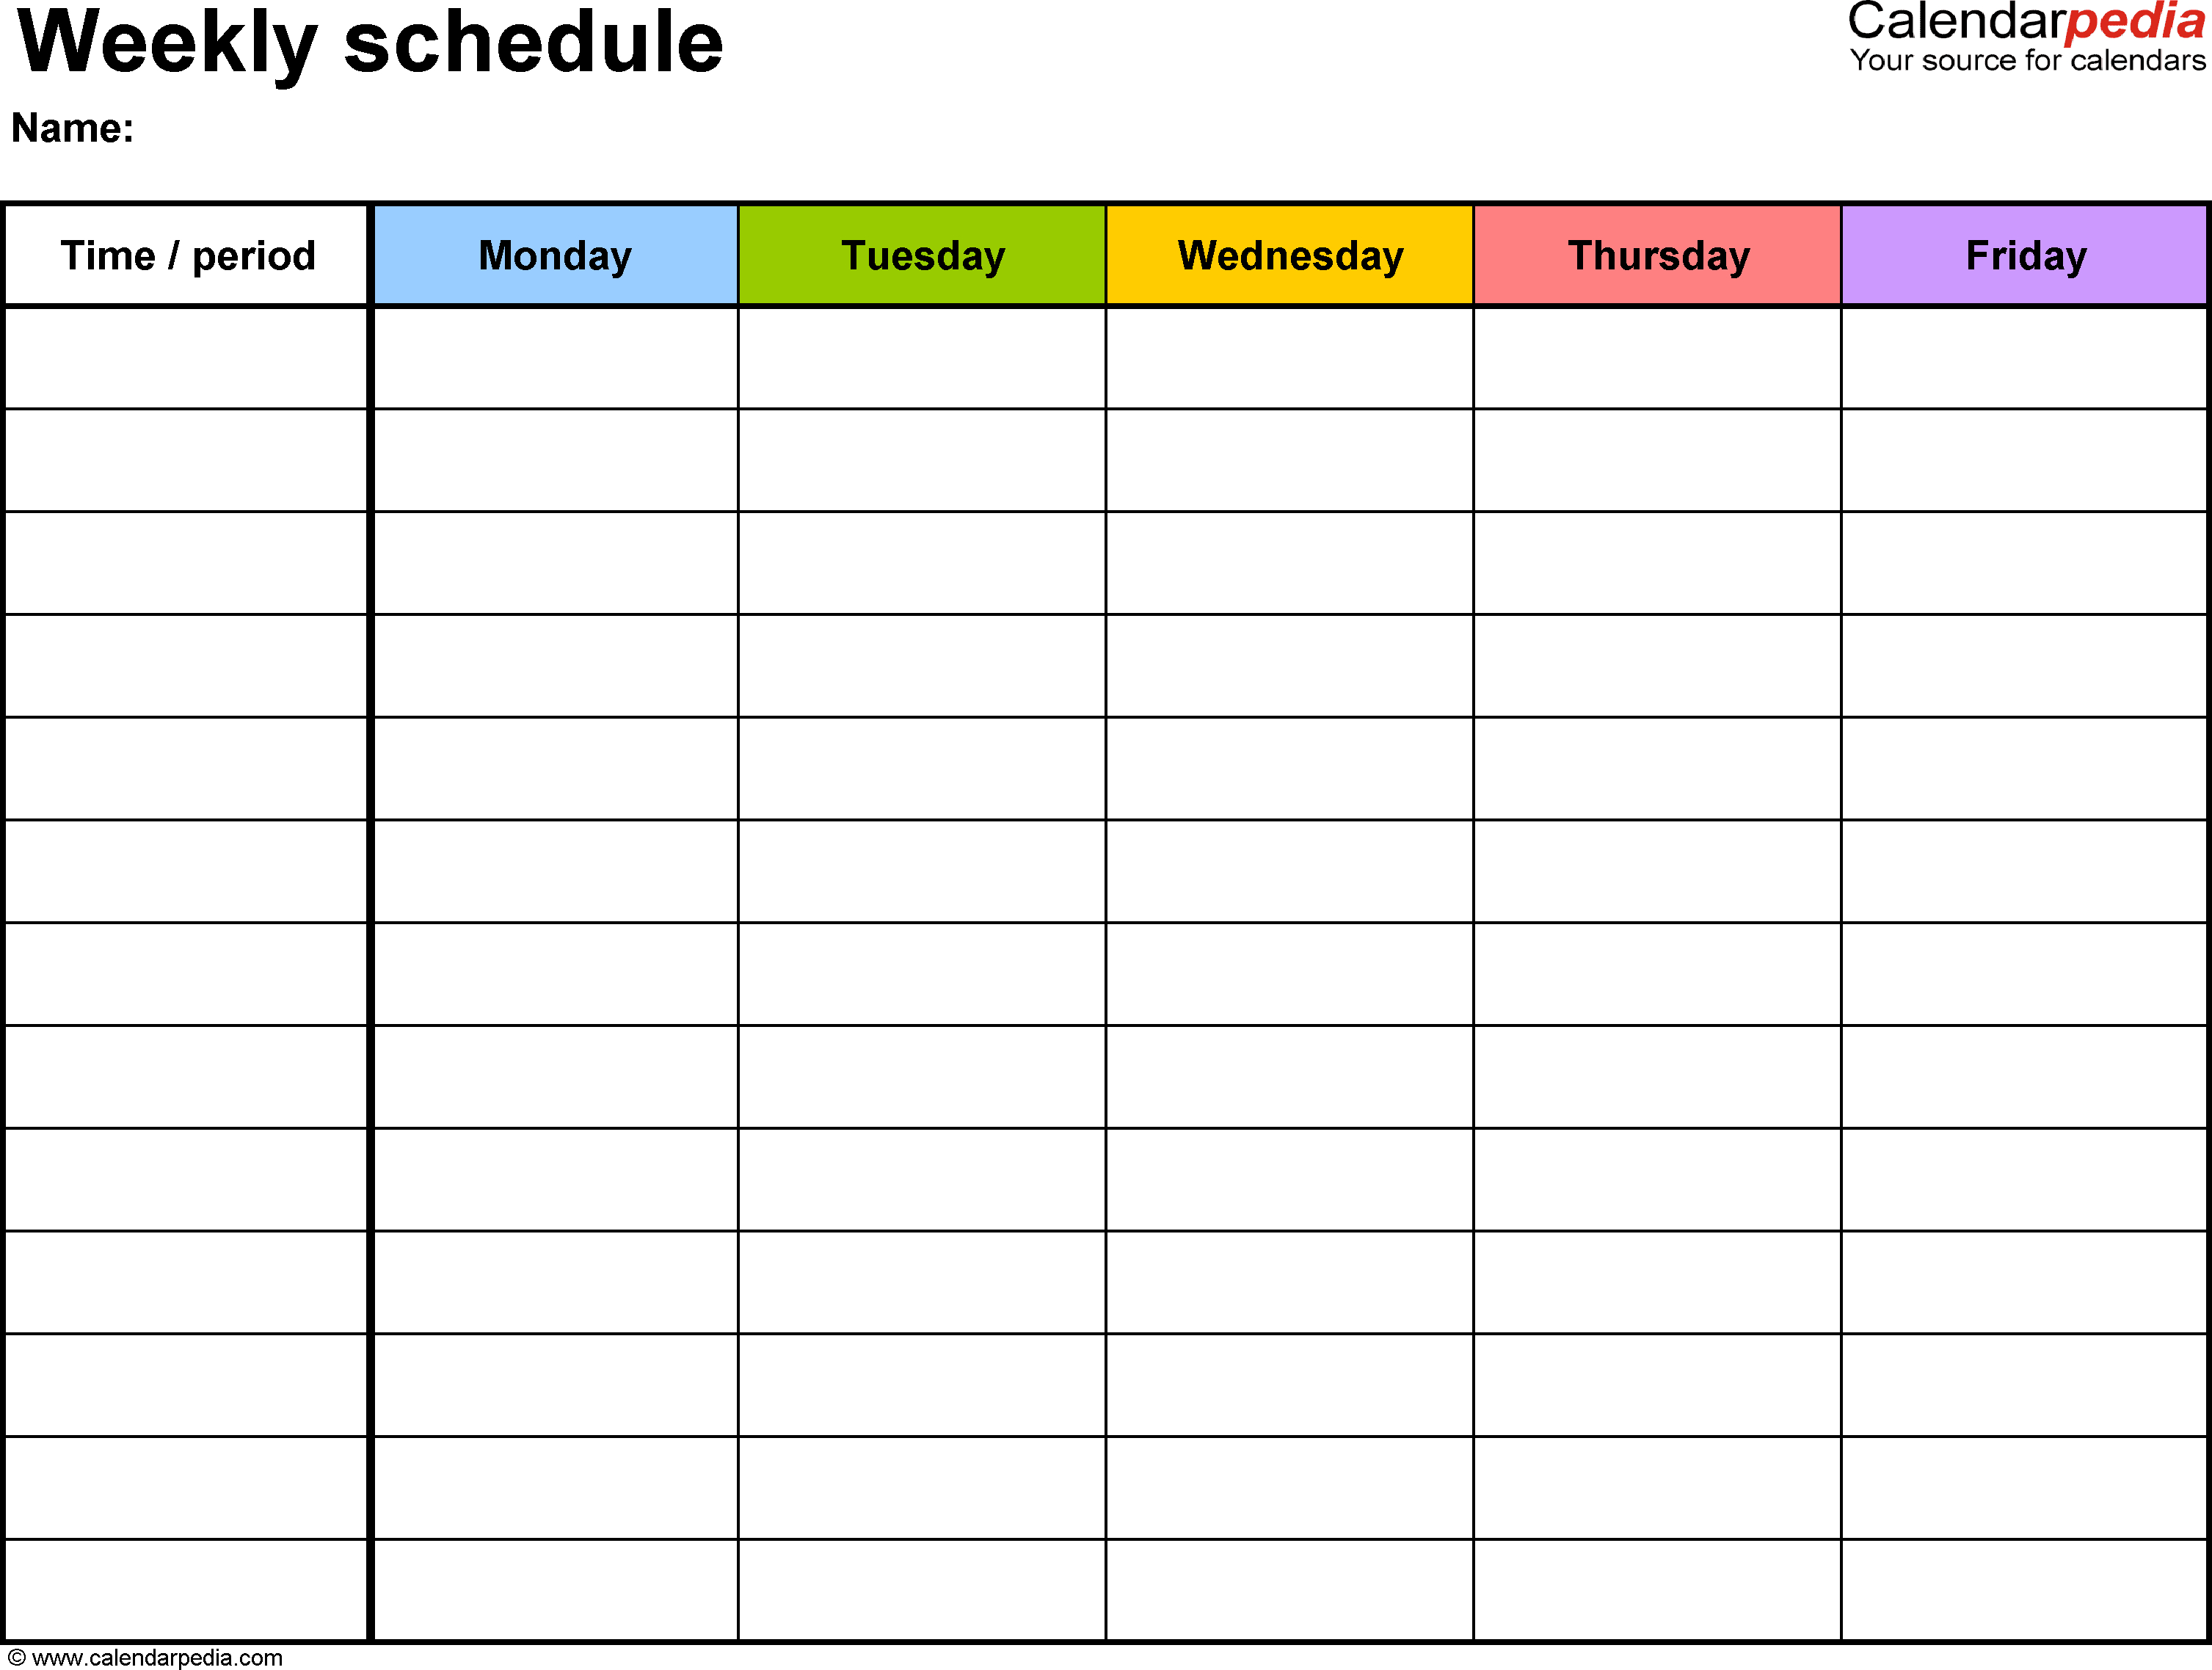 Weekly Schedule Template For Word Version 1: Landscape, 1 2 Week Schedule Word Template